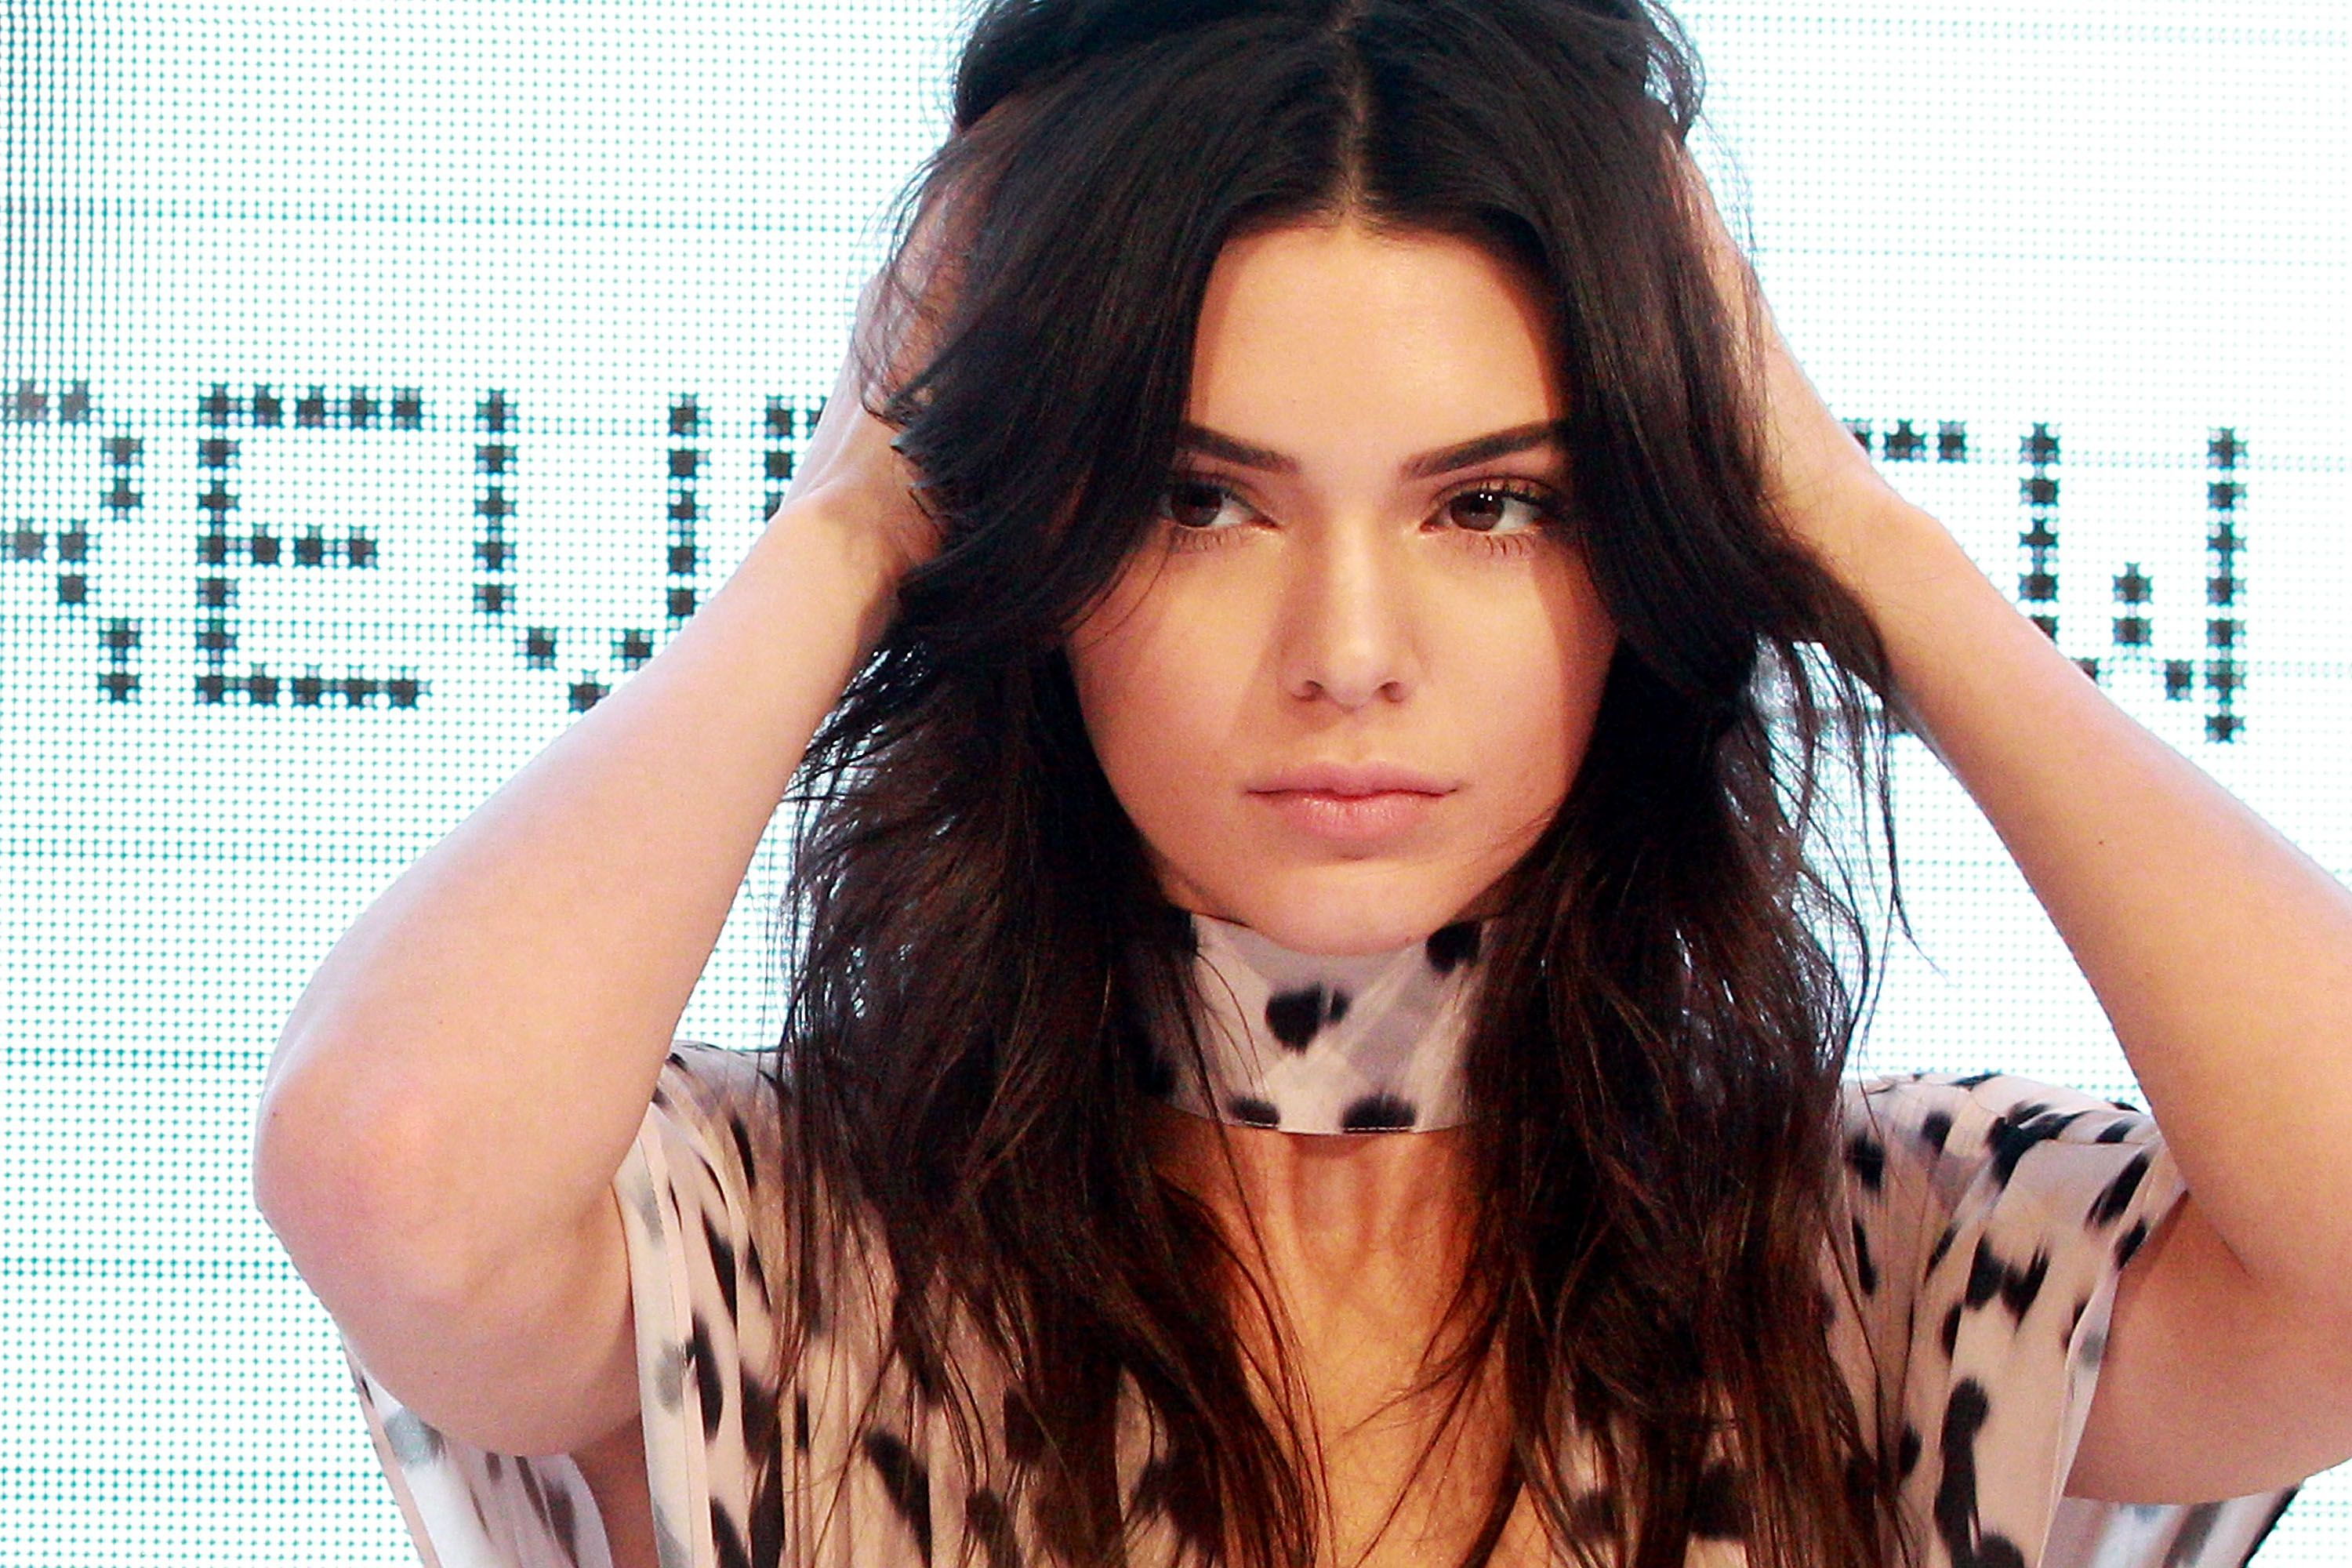 Kendall Jenner Has Reportedly Moved On From Harry Styles With This Hot Nba Player